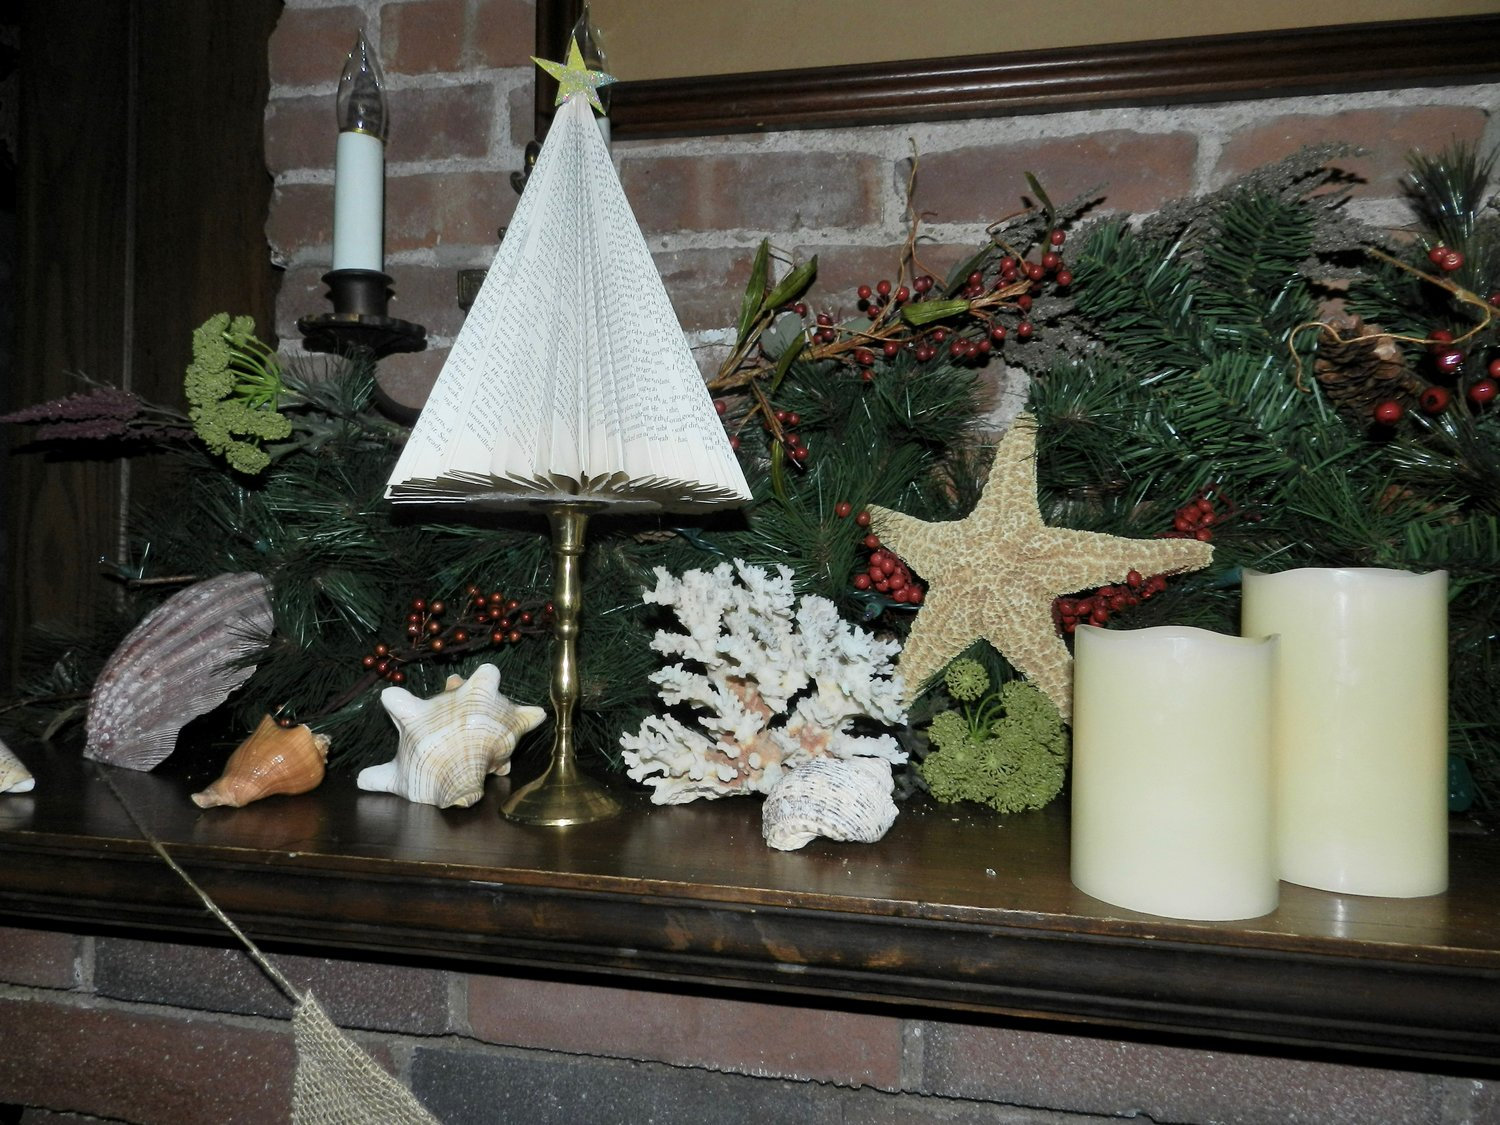 Como's mantel features touches of marine life, festive greens and a miniature tree crafted from the pages of a book.